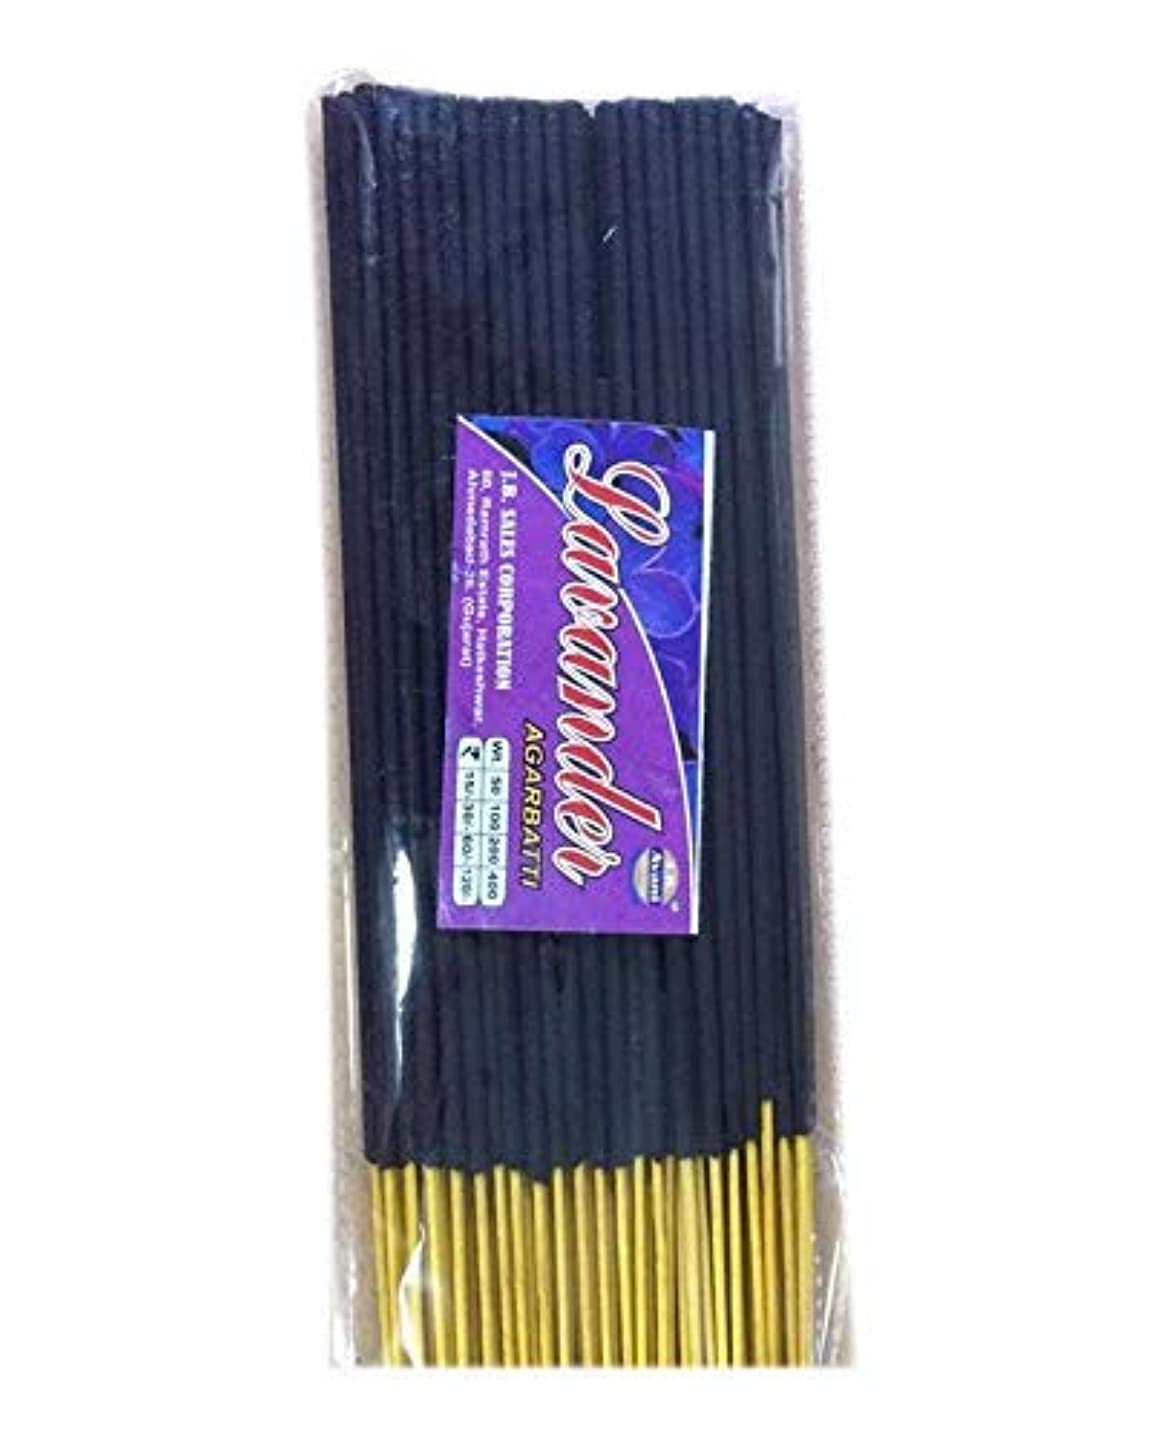 キャップパケット巨大なAvani Lavender Incense Stick/Agarbatti (400 Gm. Pack)